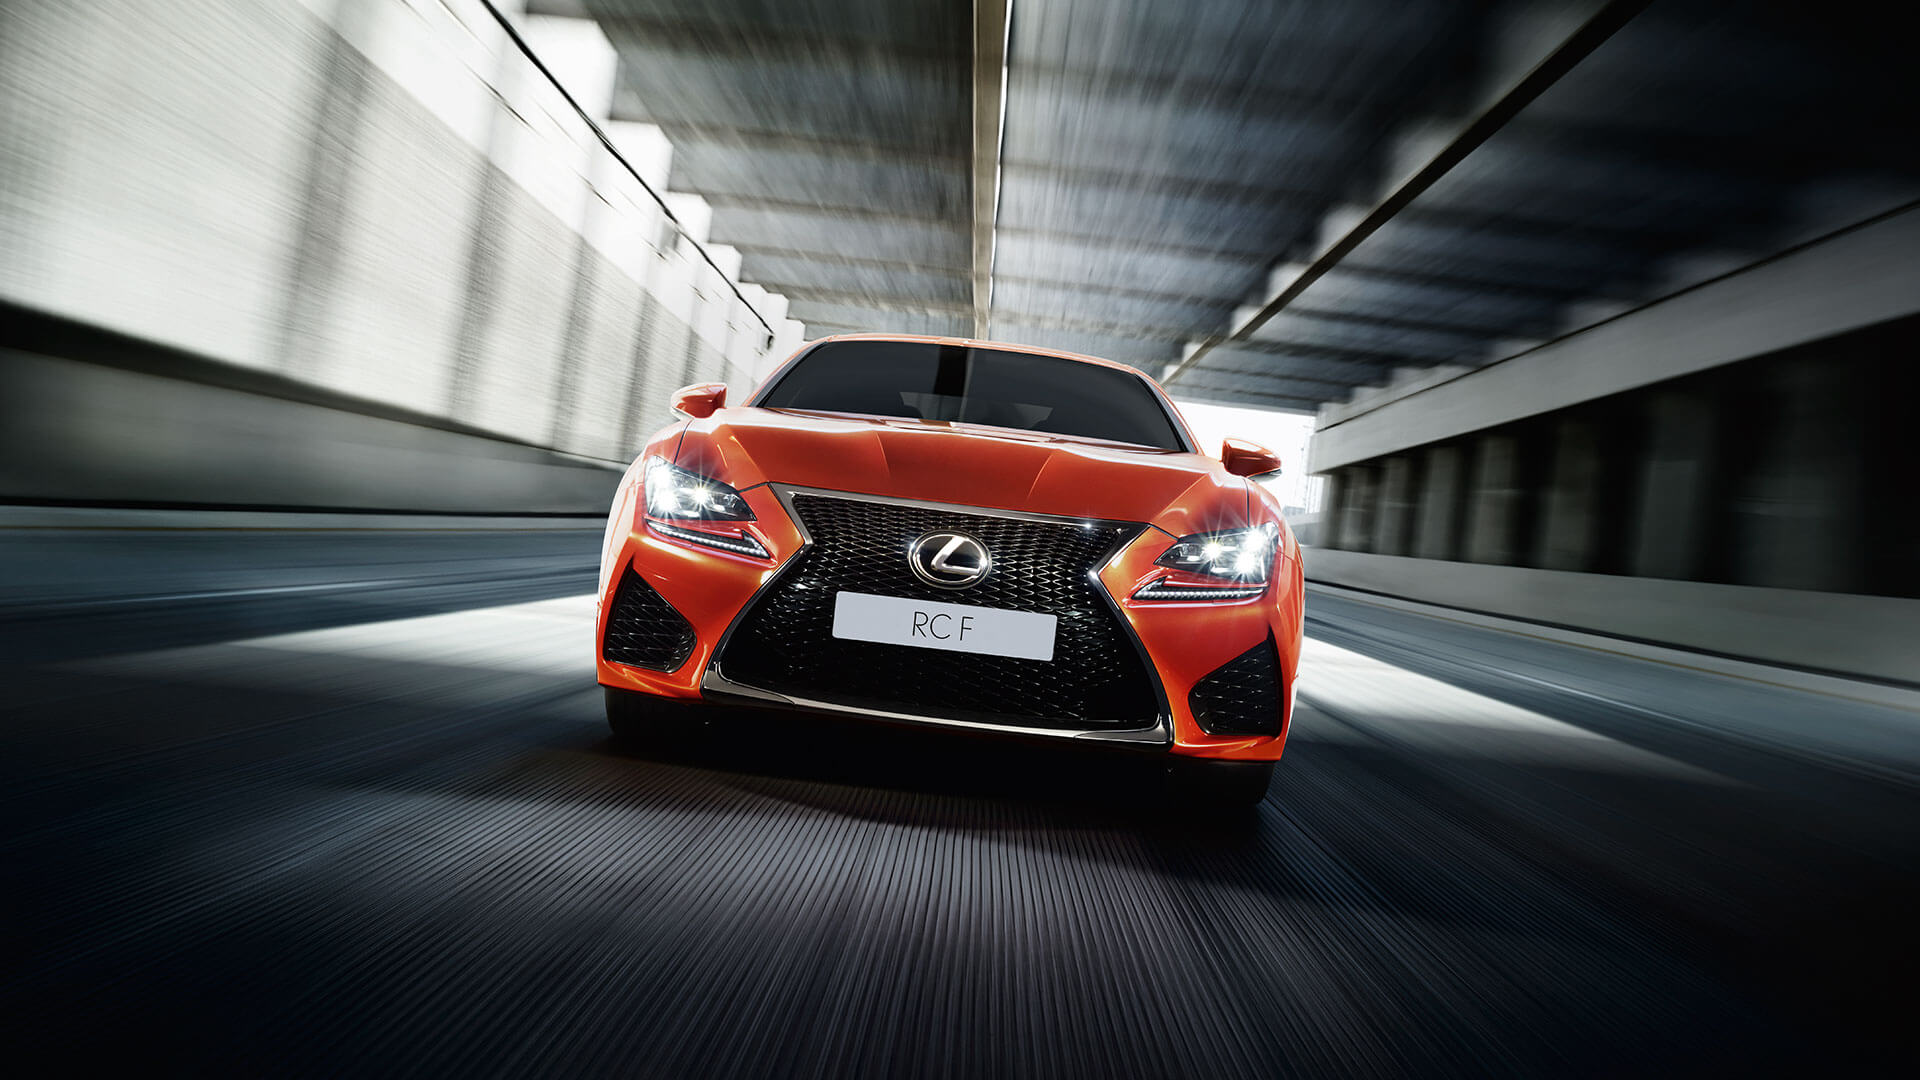 lexus f models section03 09